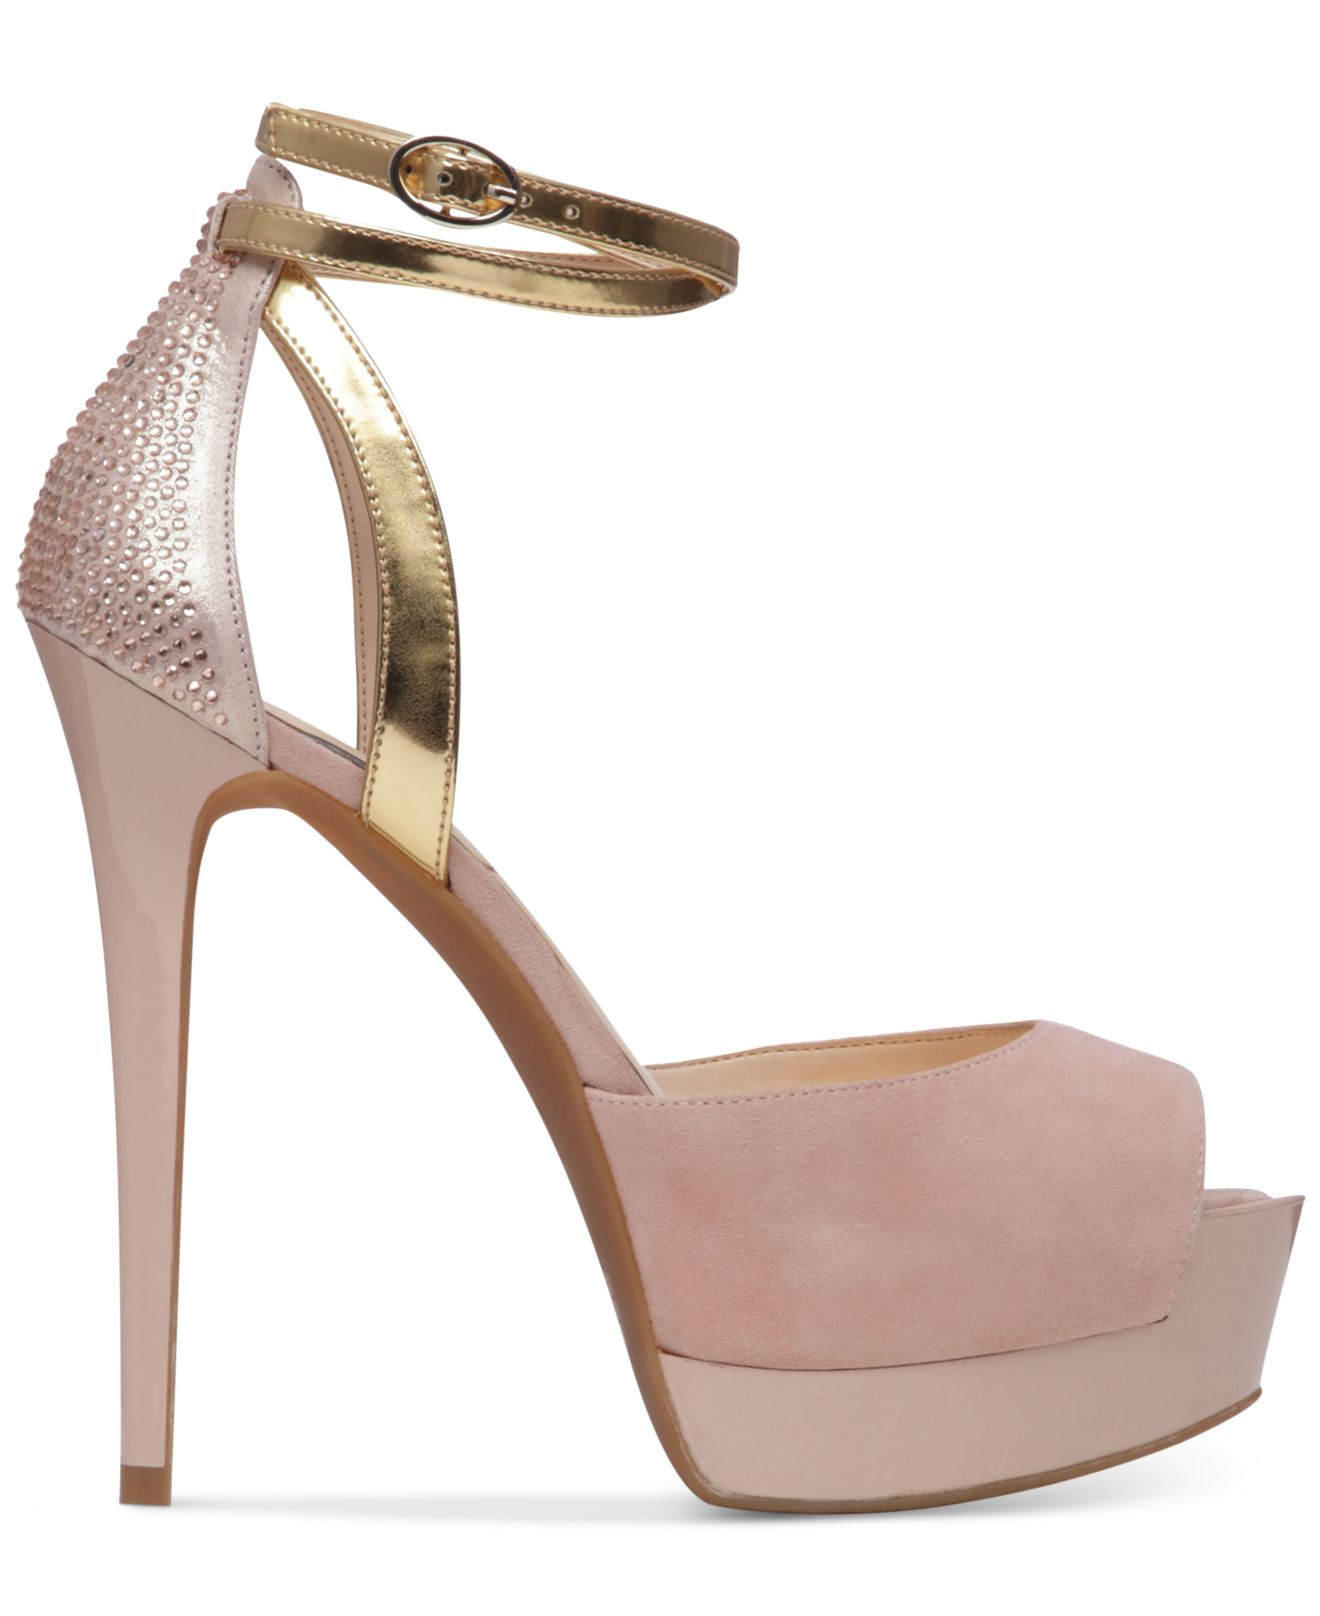 0cff2d9edbc3 Lyst - Jessica Simpson Koen Ankle-strap Platform Pumps in Natural